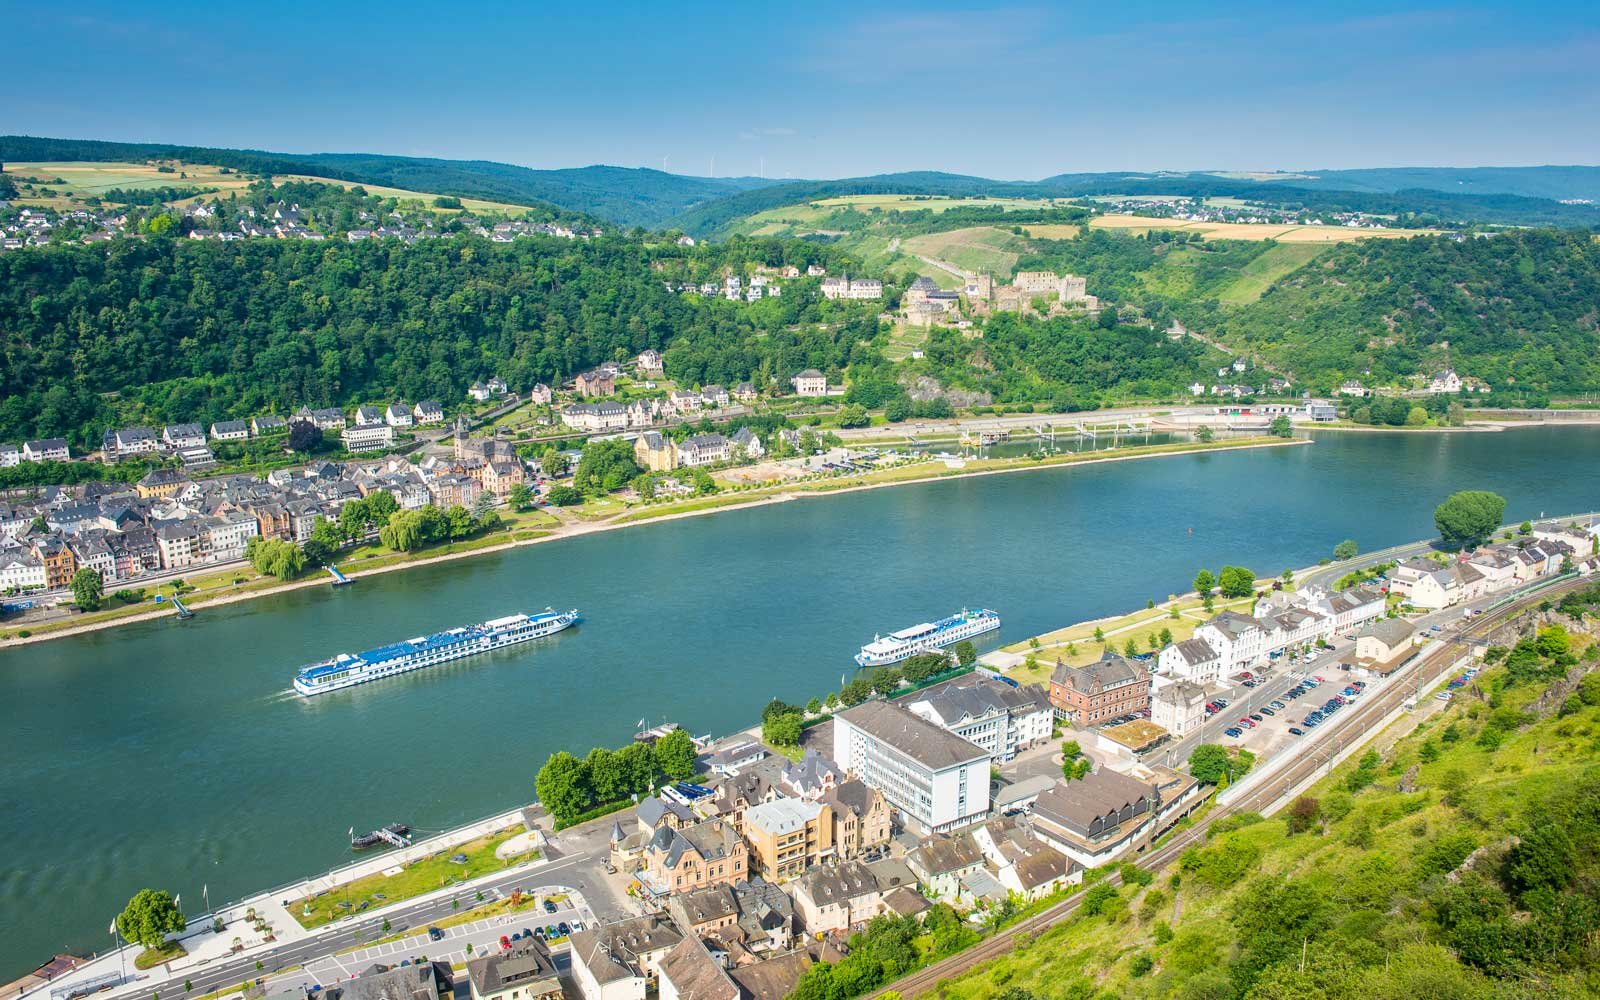 Cruise ship passes St. Goarshausen on the River Rhine, Rhine Gorge, UNESCO World Heritage Site, Germany, Europe